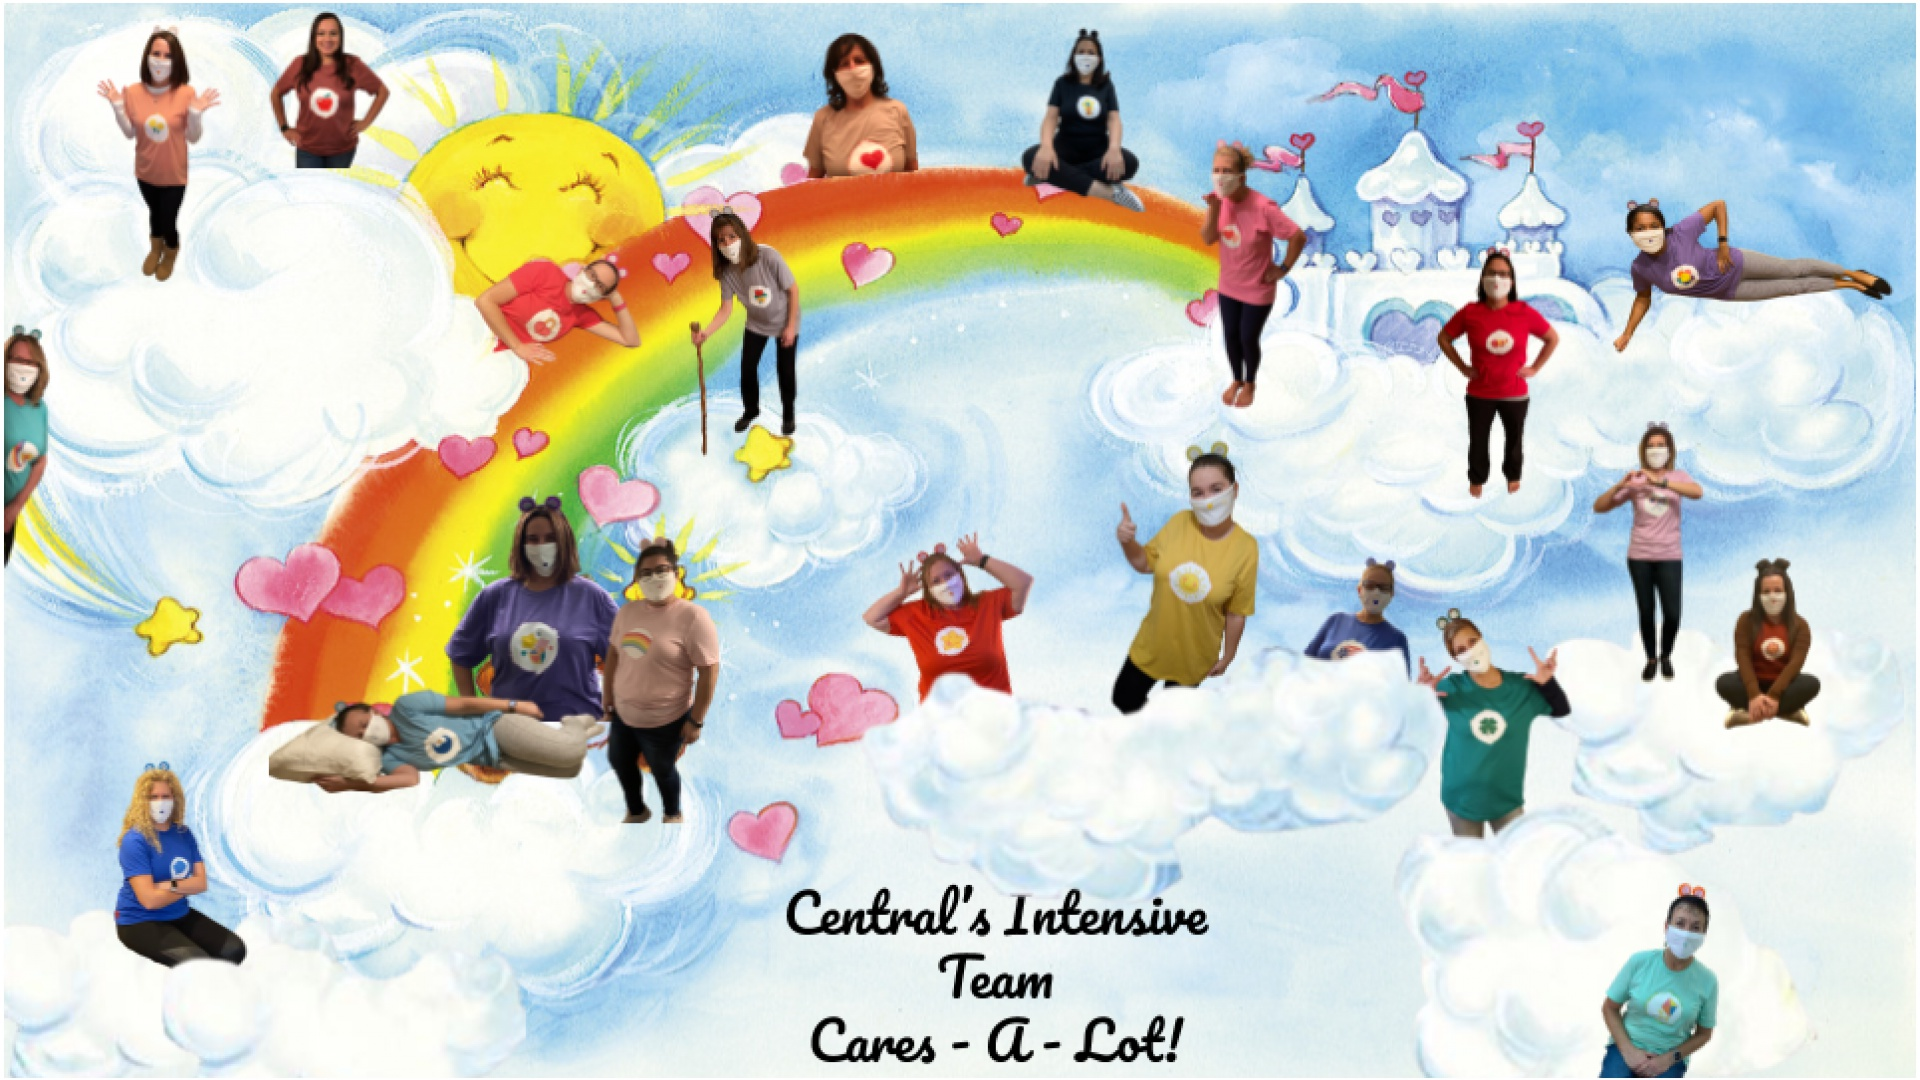 slidshow image - Halloween 2020 - Intensive team - Carebears -